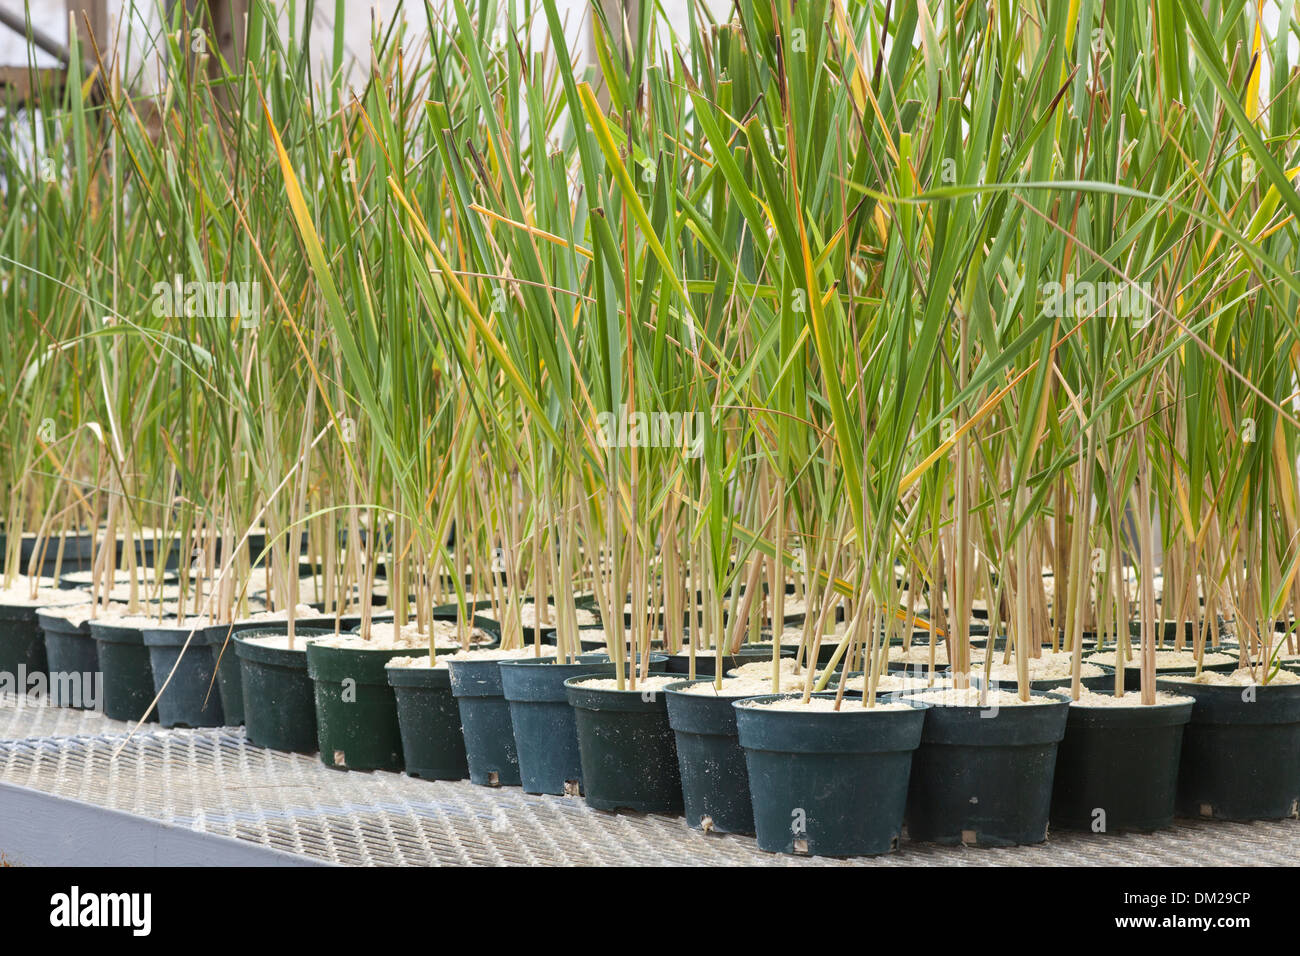 Bunch Grass (Eragrostis variabilis) plantings growing in a greenhouse for a USFWS habitat restoration project. - Stock Image